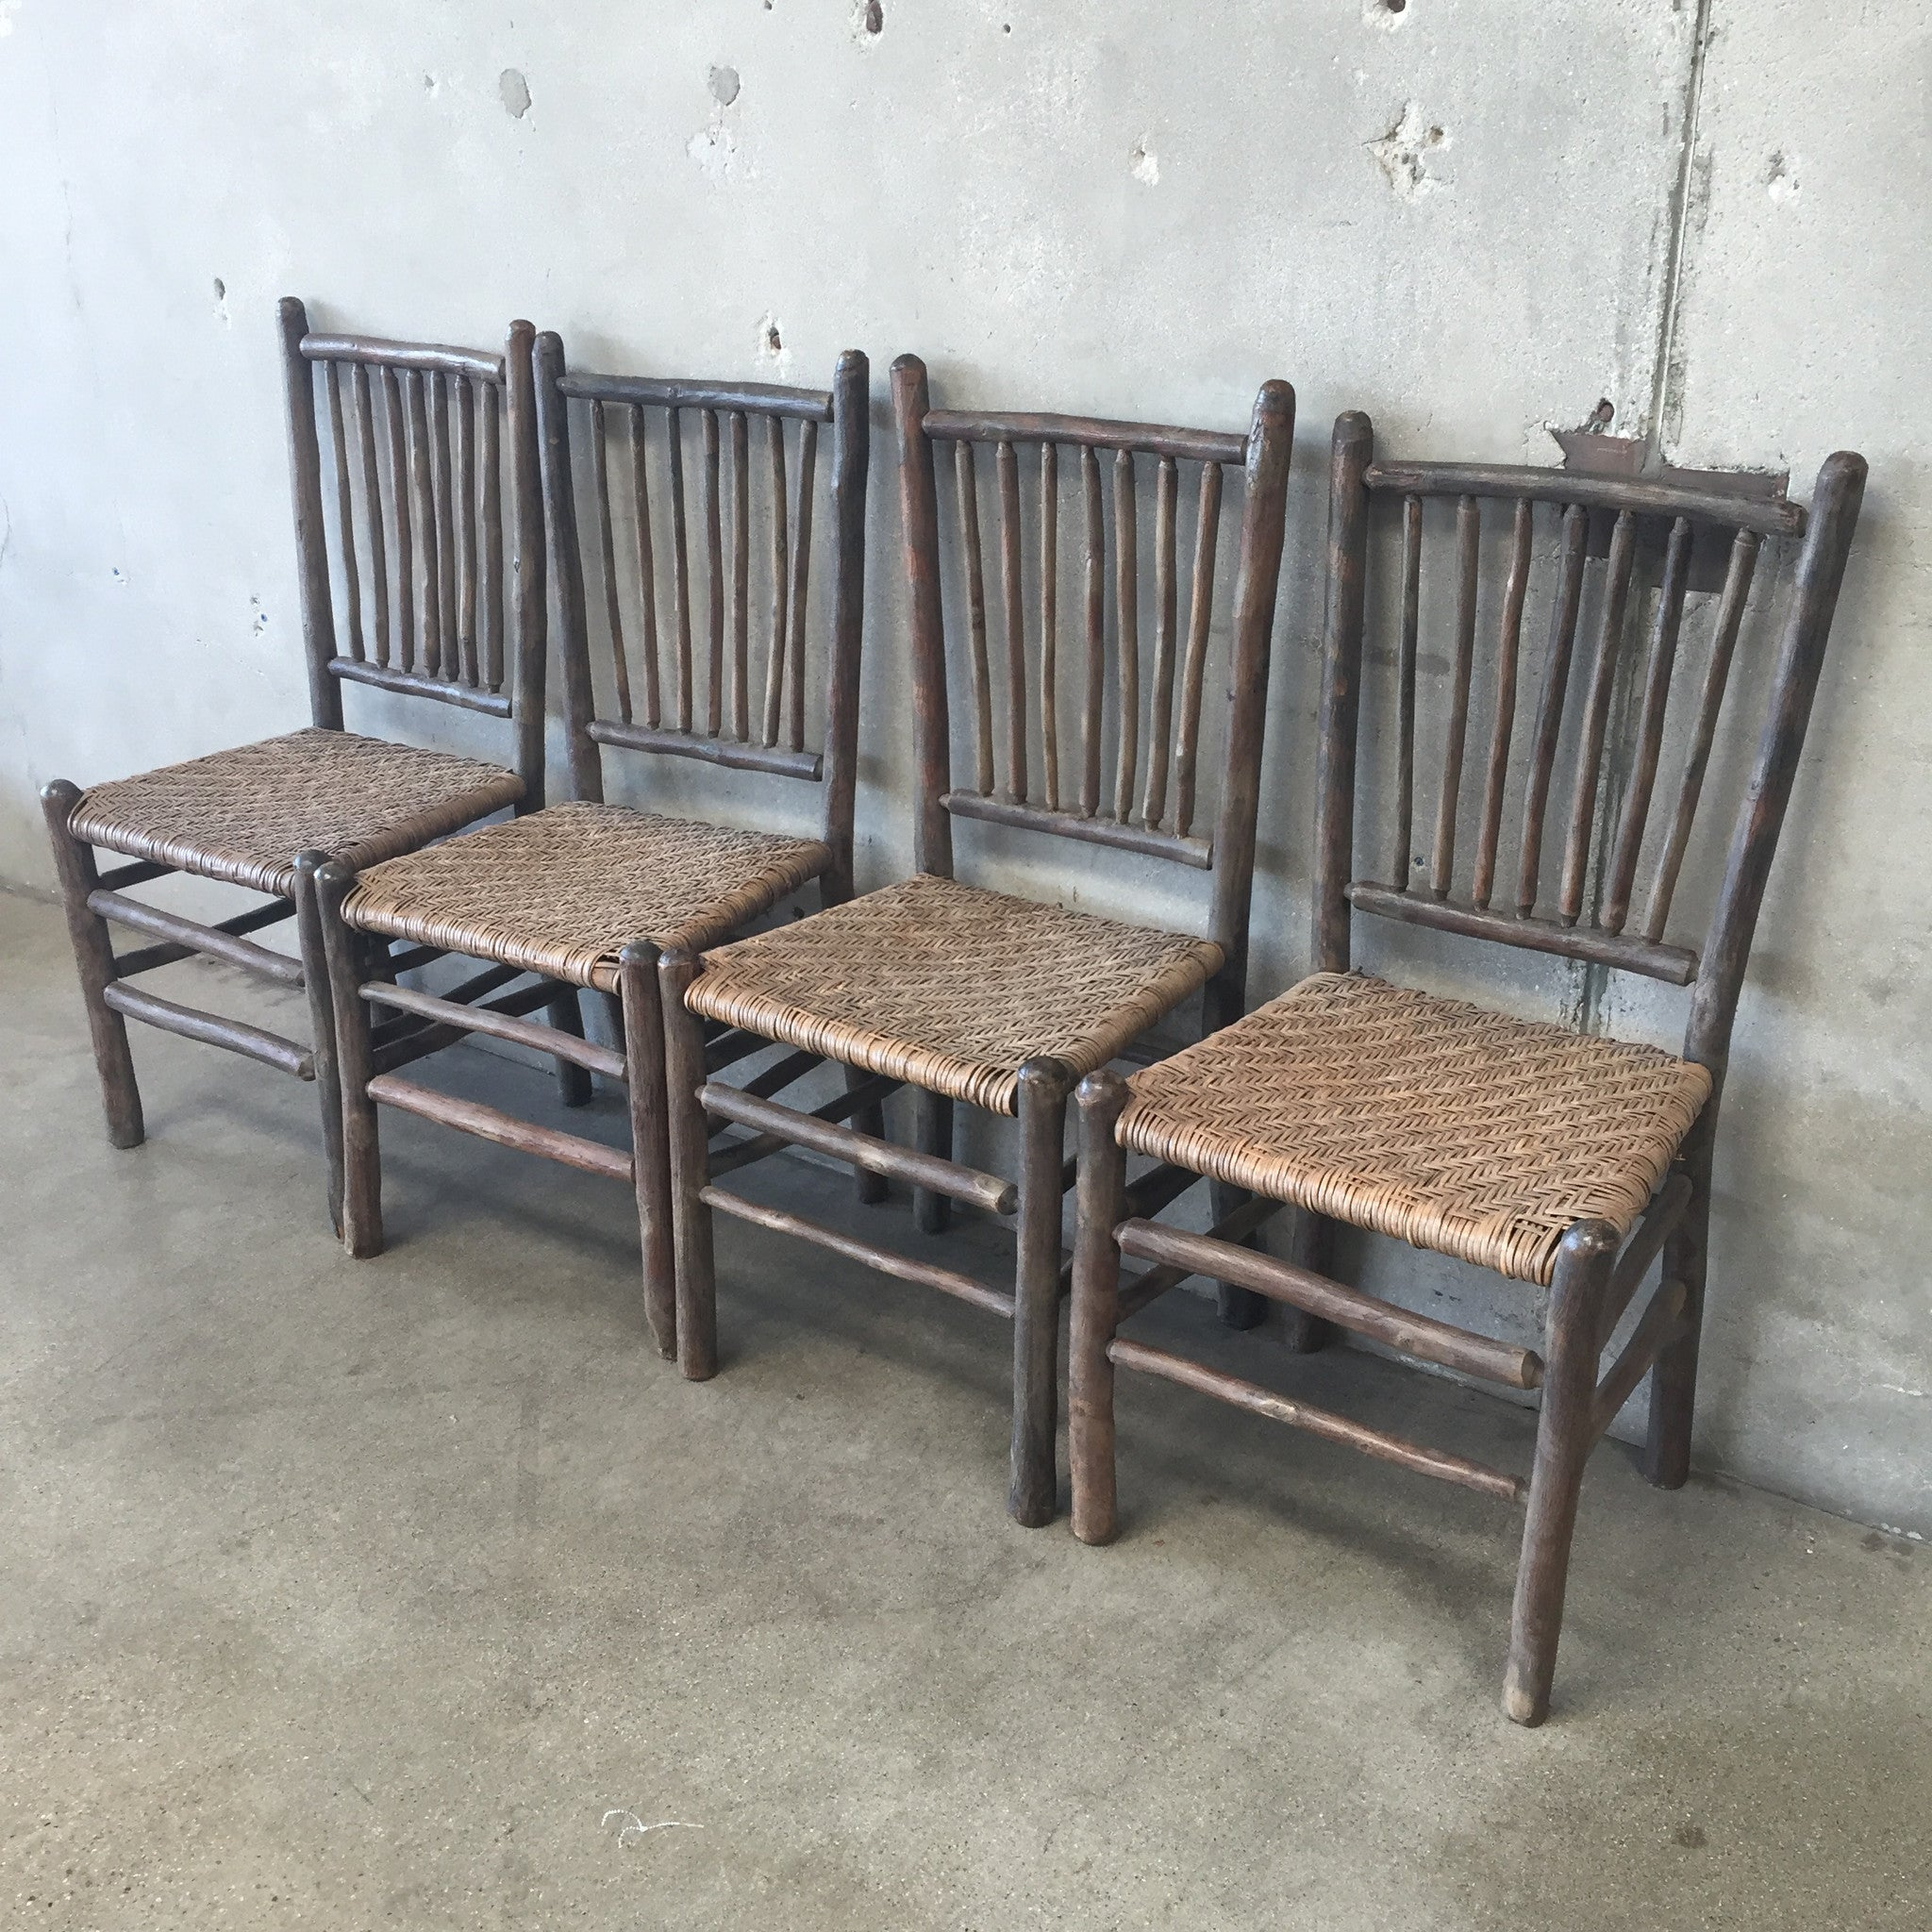 S Original Grey Painted Old Hickory Chairs UrbanAmericana - Old hickory furniture